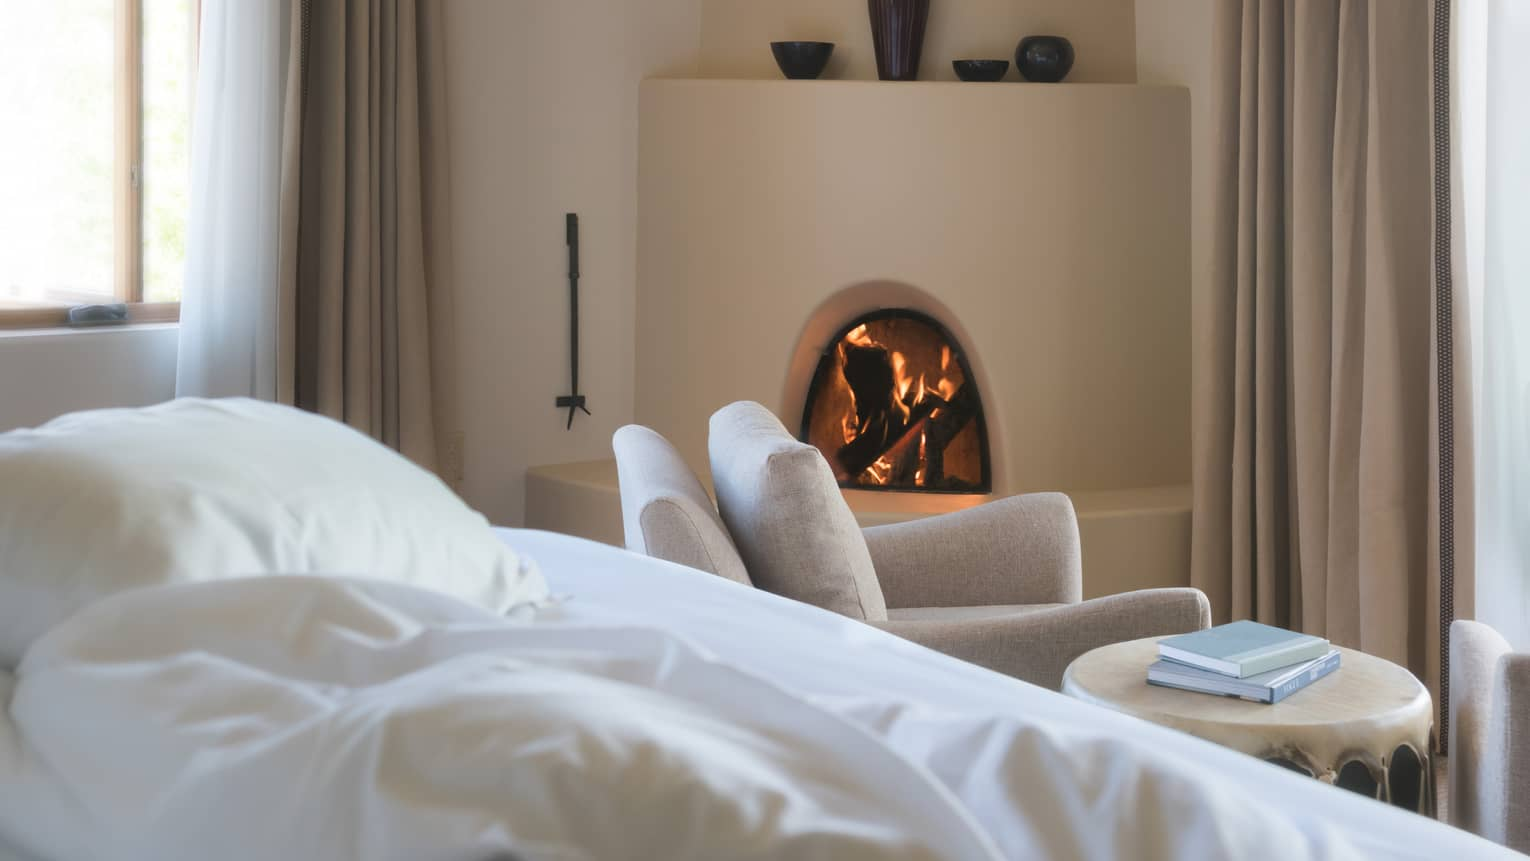 Hotel bed pillows, white armchair in front of curved clay fireplace, vases on mantle